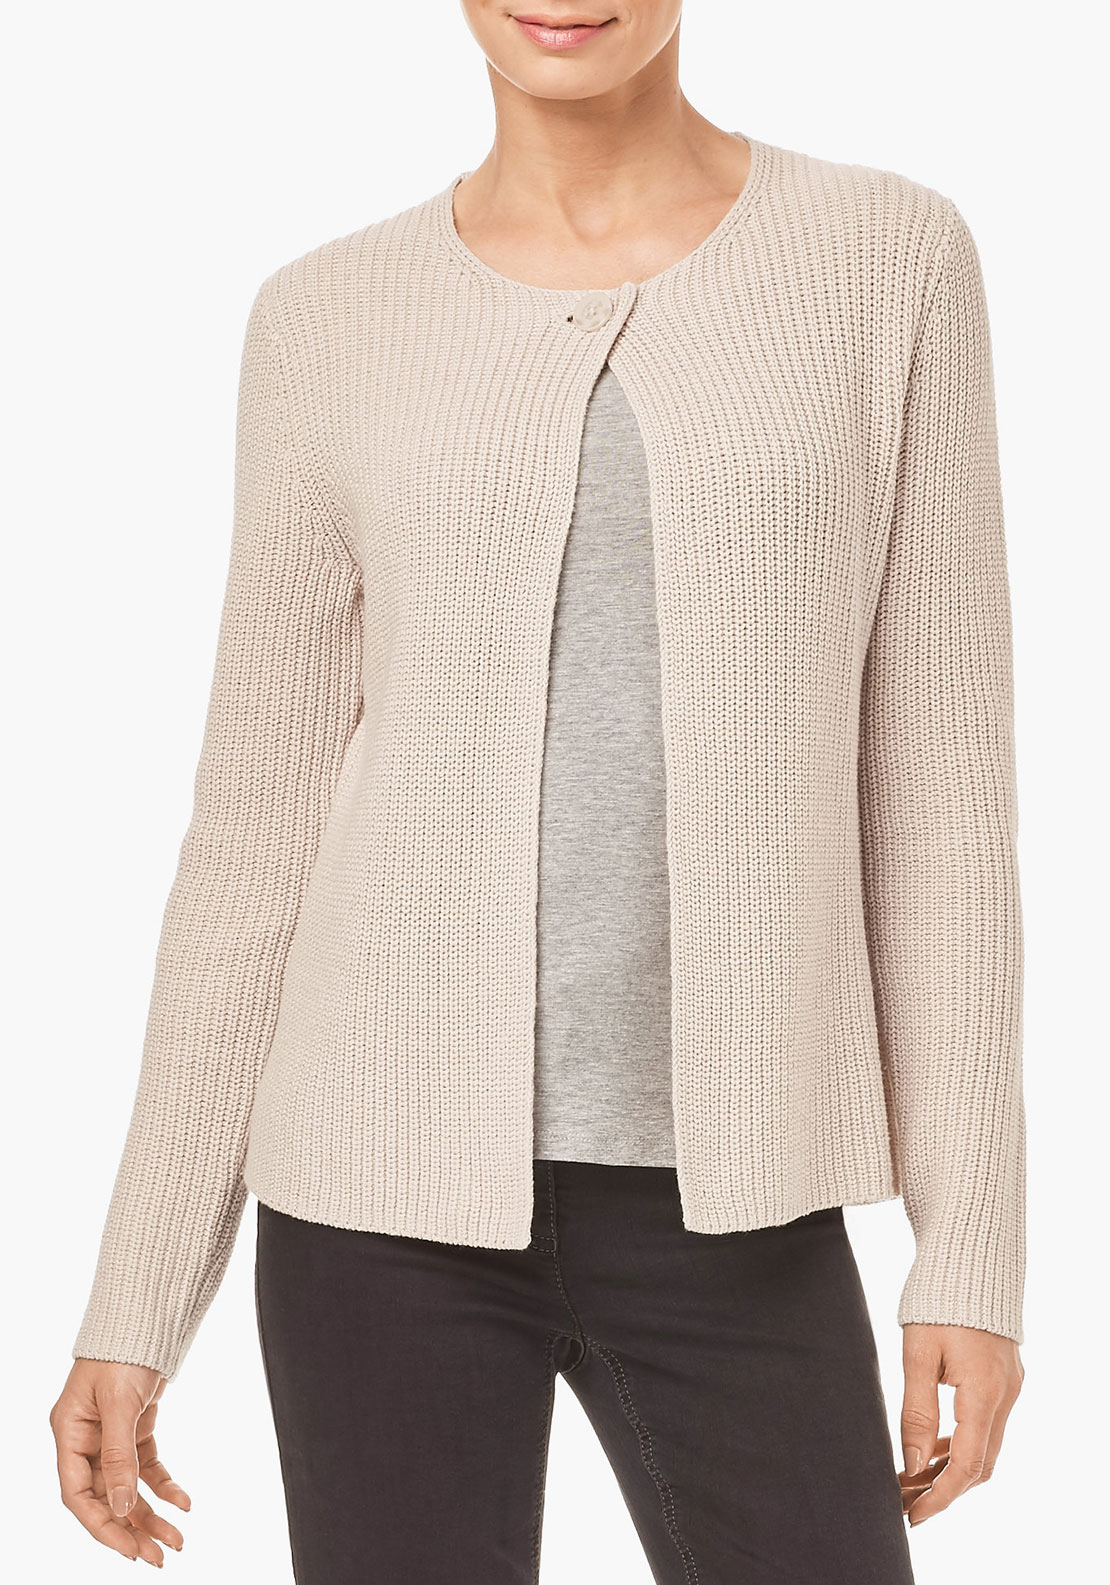 Gerry Weber Chunky Knit Cardigan, Cream